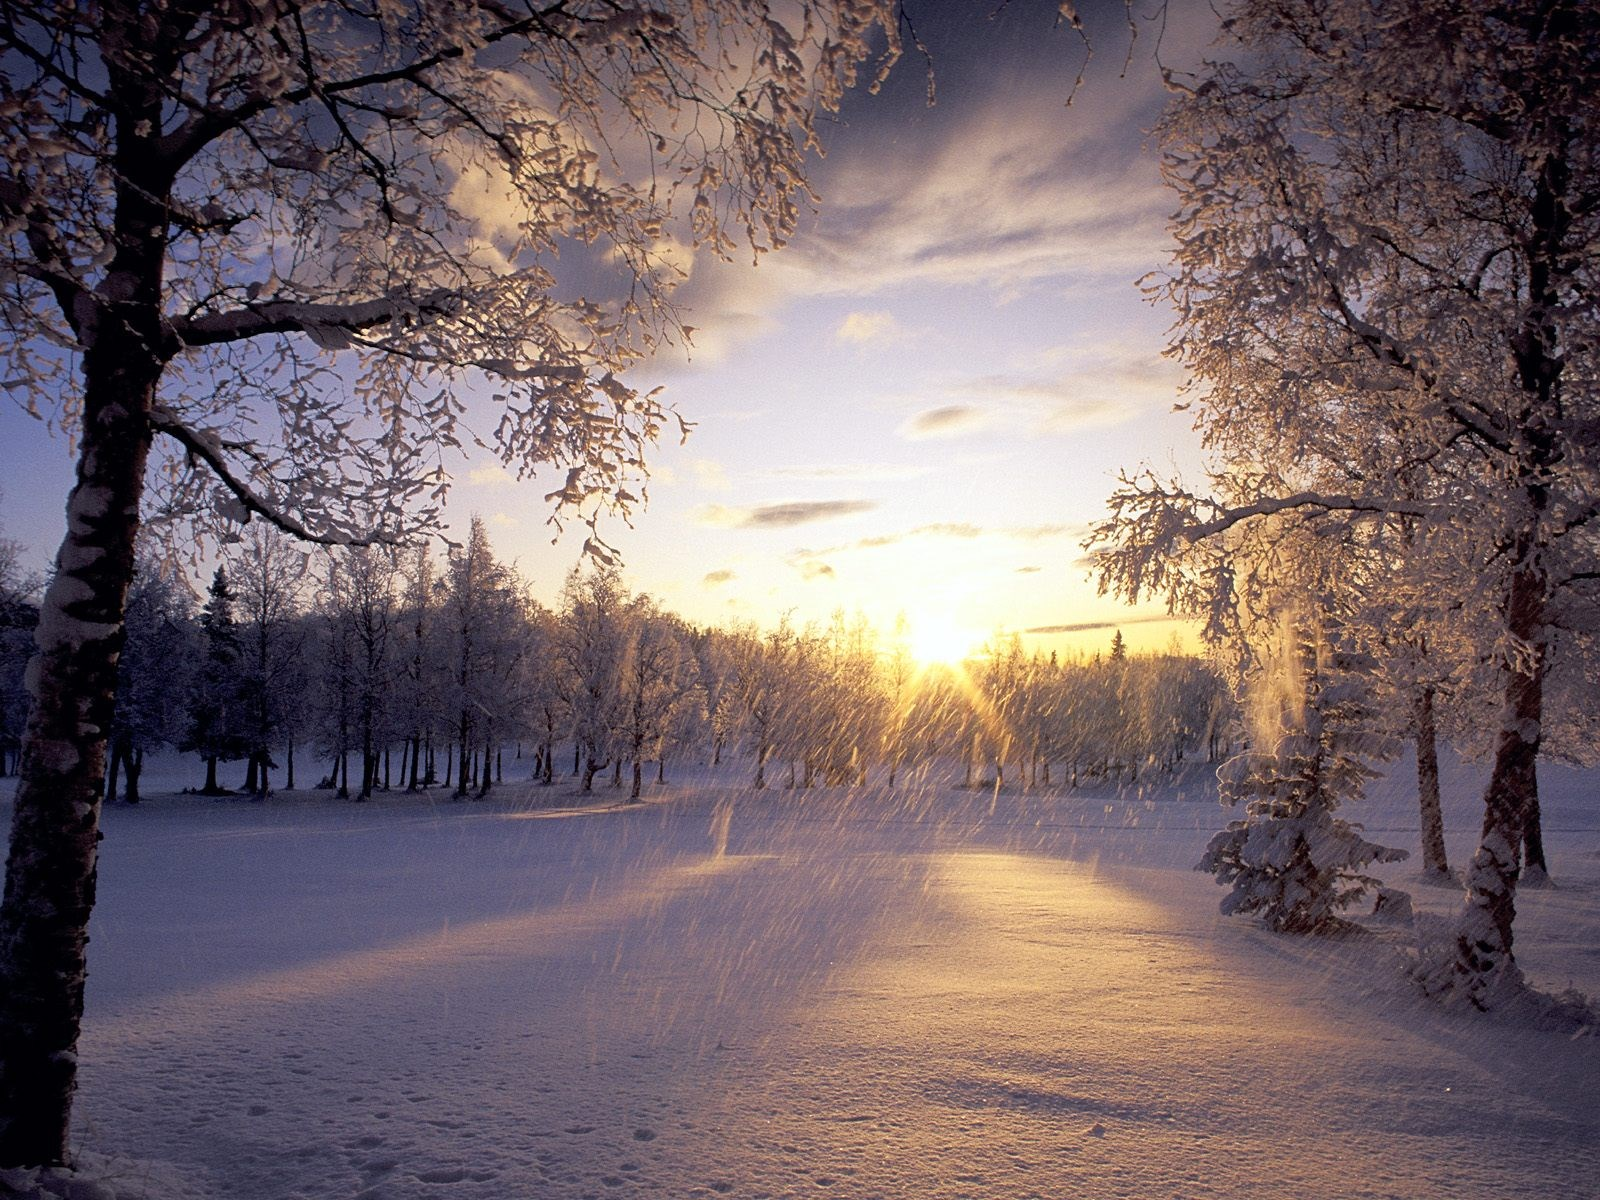 winter-Full-HD-Pictures-wallpaper-wpc90010702